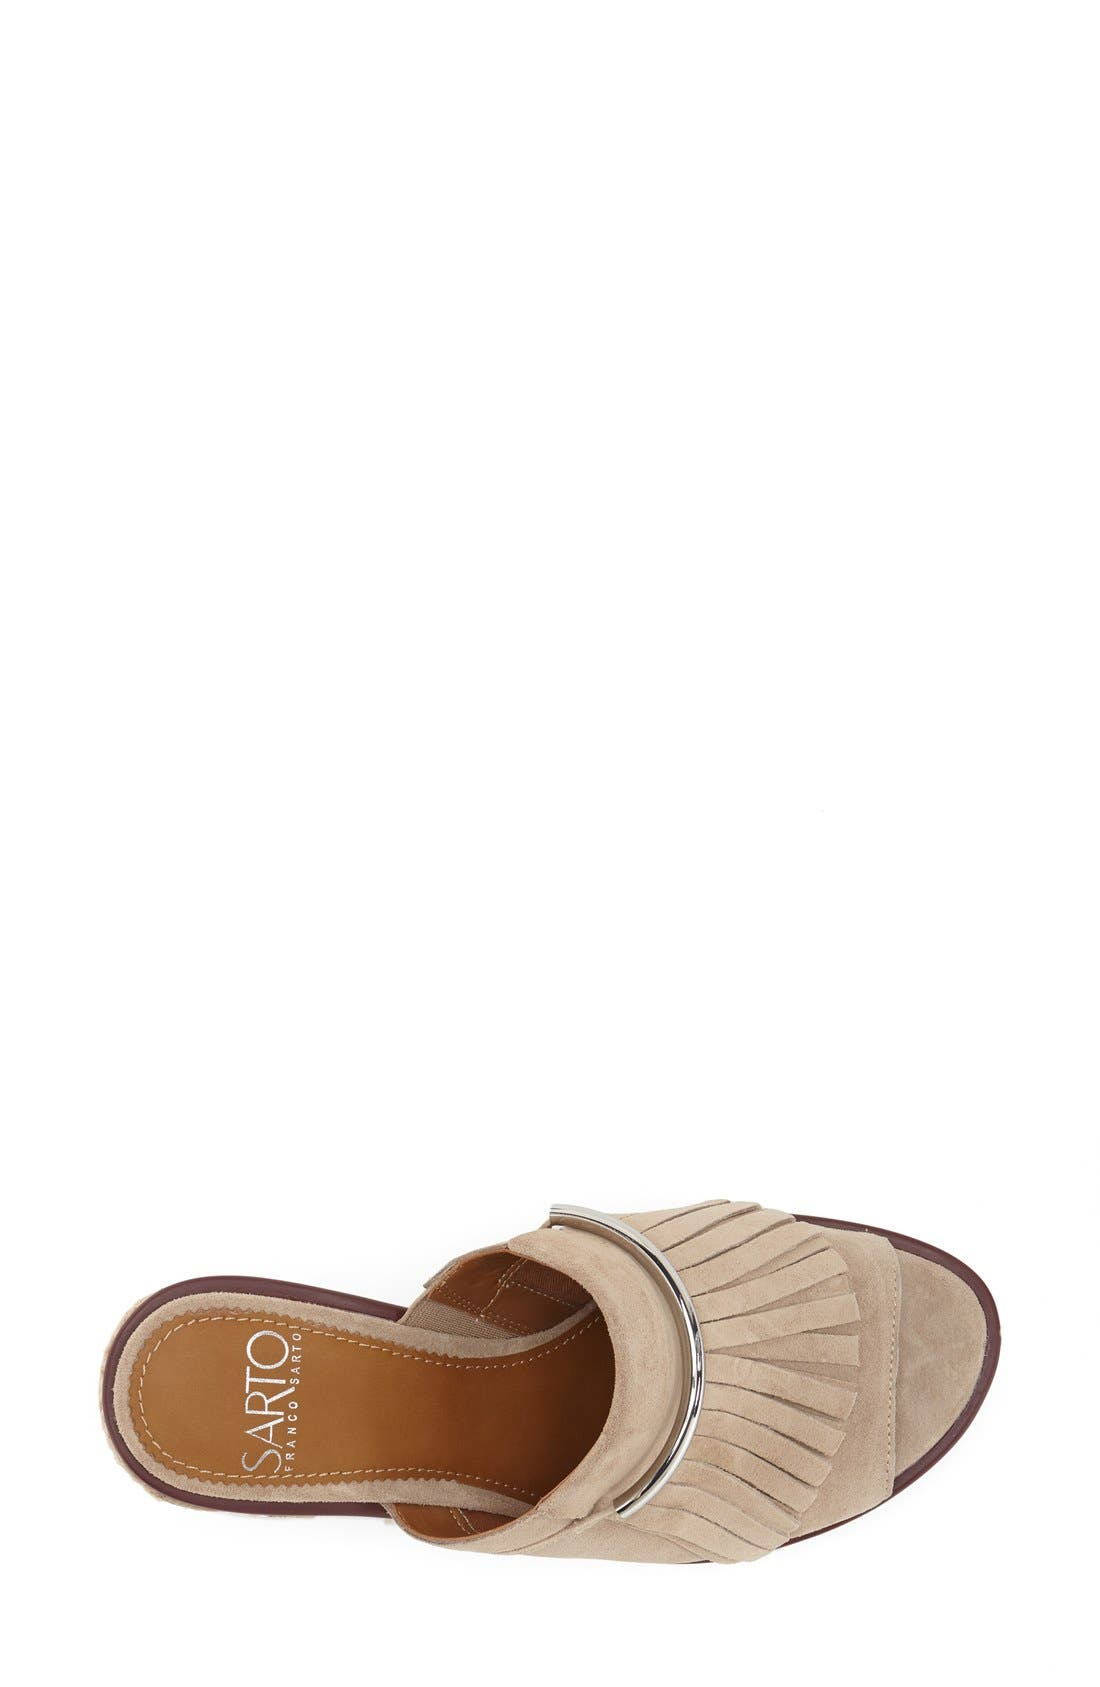 'Candace' Wedge Mule,                             Alternate thumbnail 3, color,                             Soft Tan Kid Suede